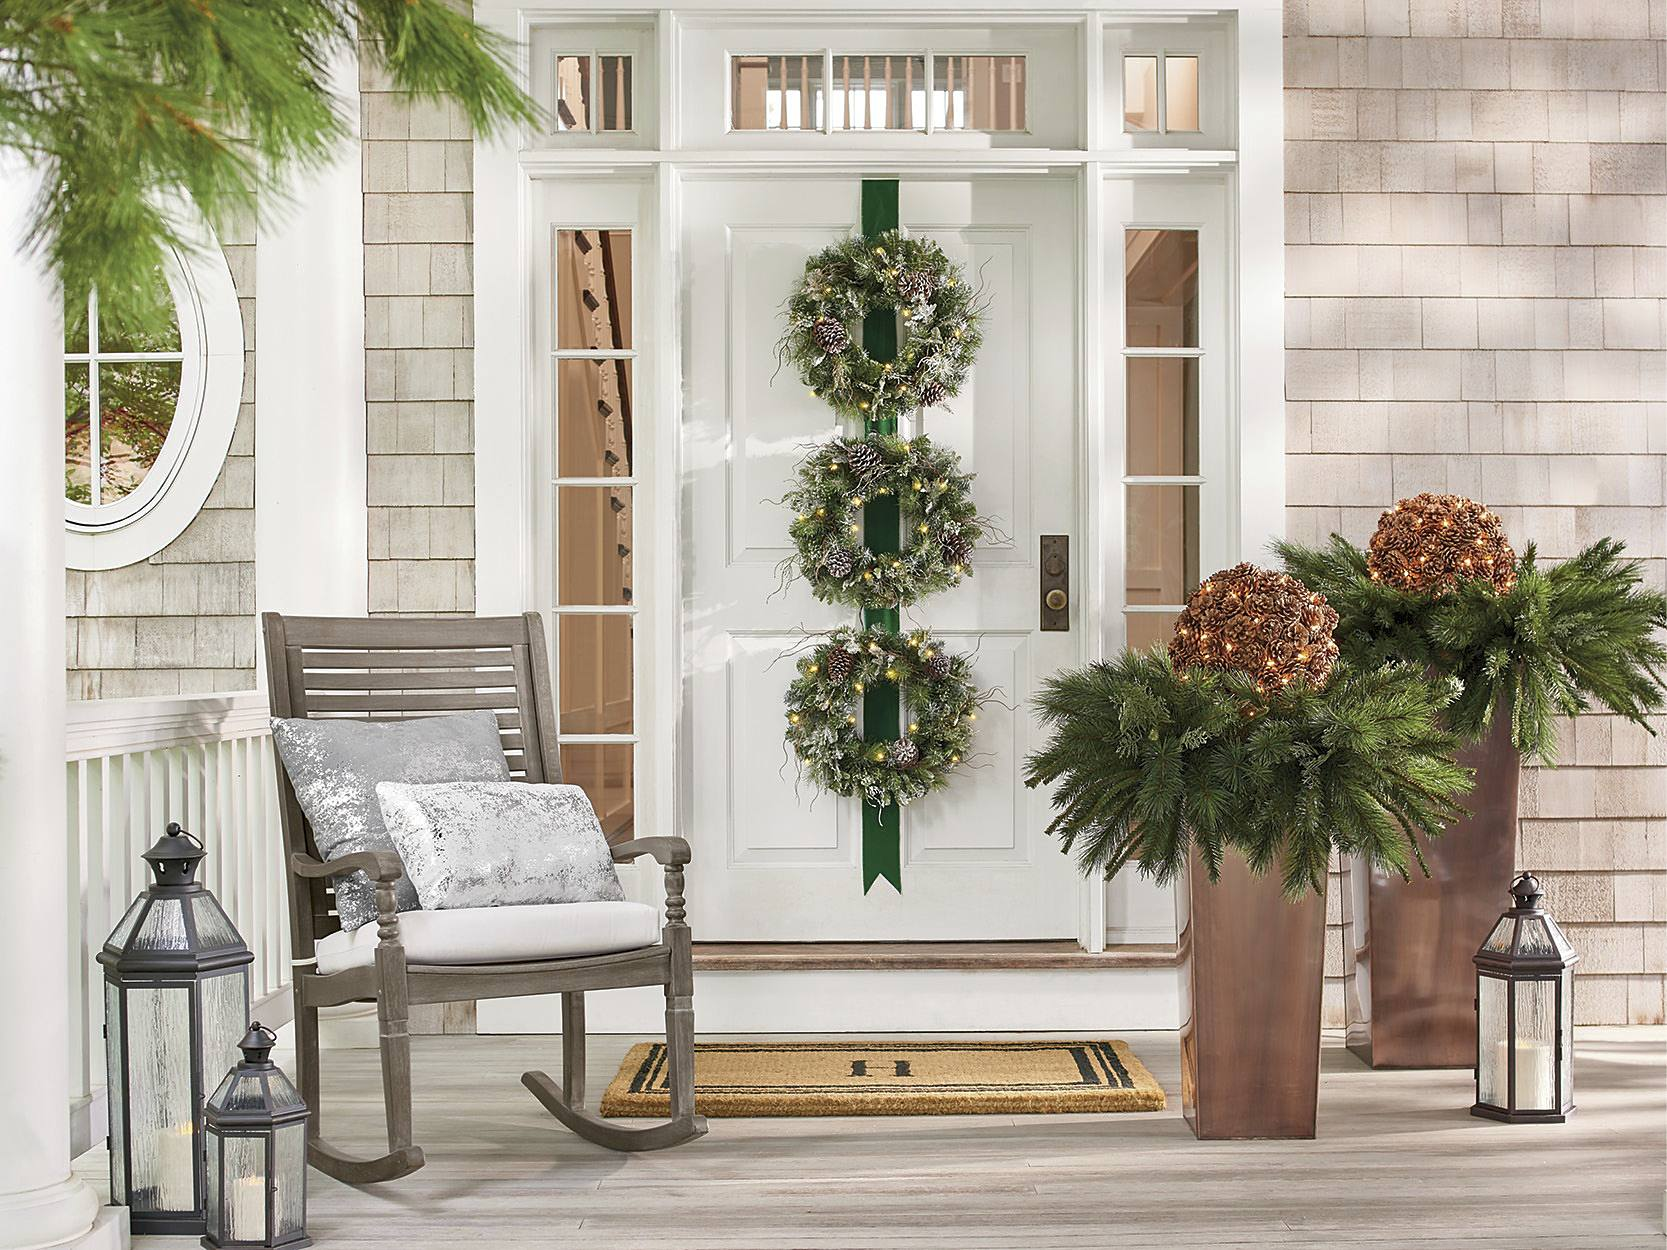 Christmas Porch Decorations: 15 Holly Jolly Looks - Grandin ...